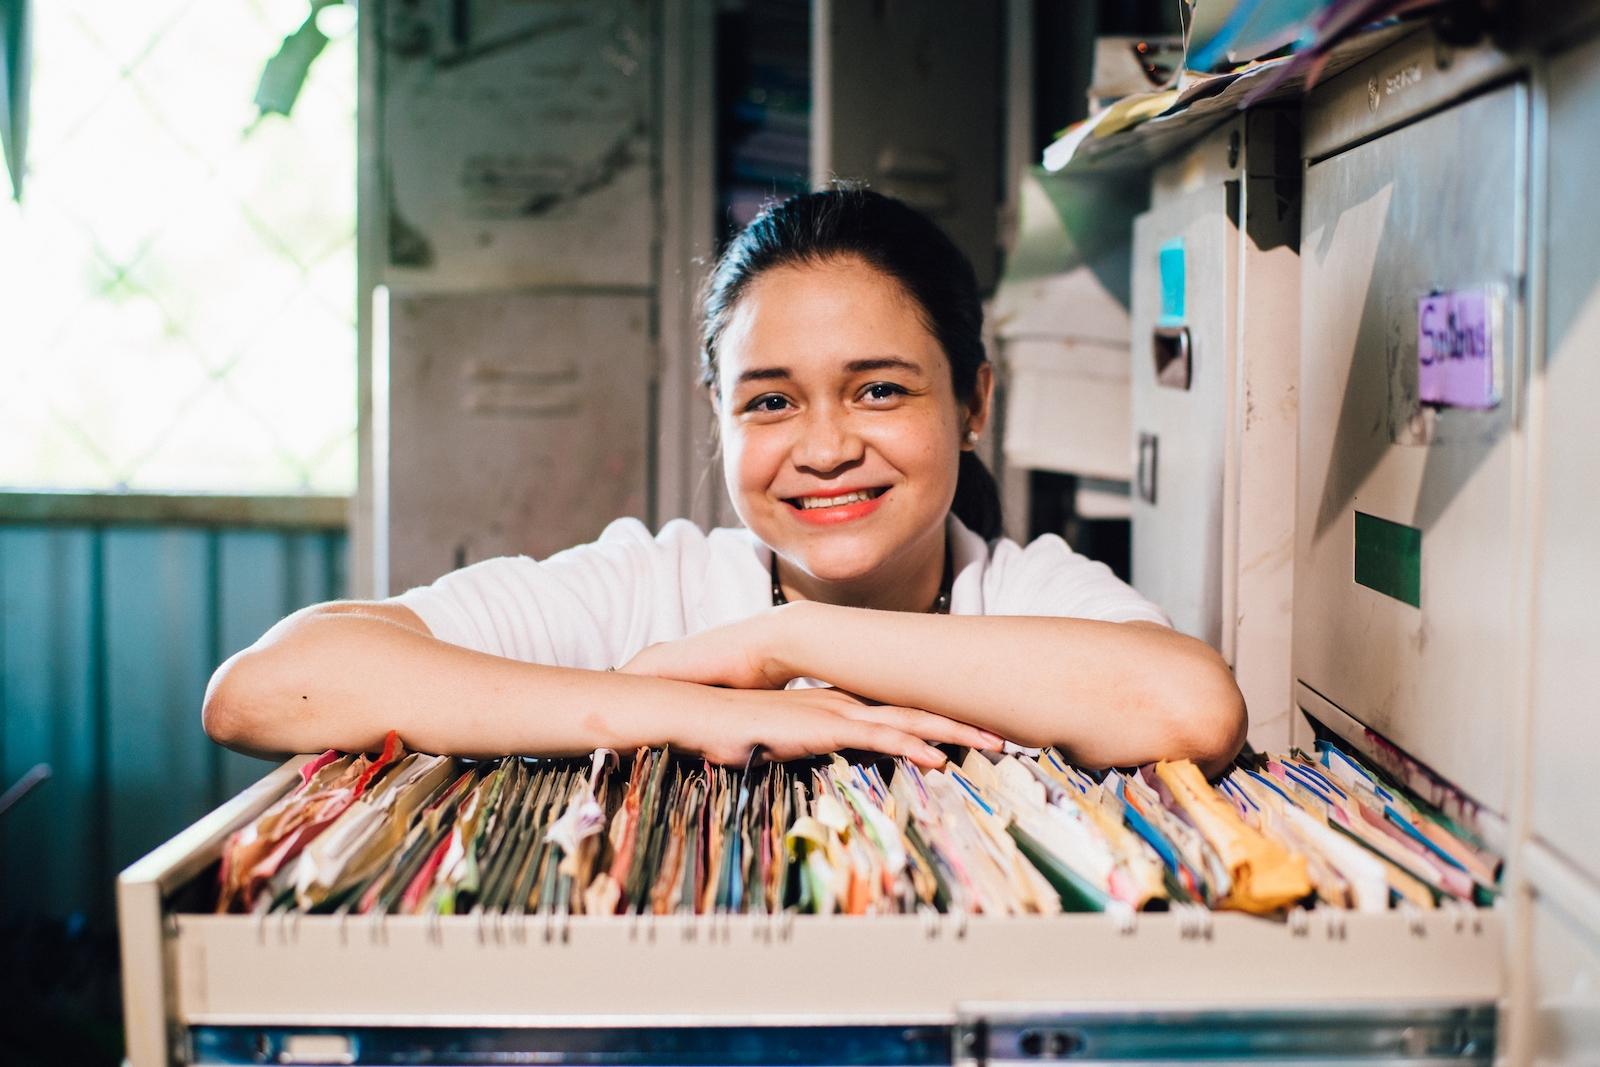 A woman leans on a drawer of file folders, smiling, showing the relation between poverty and research.